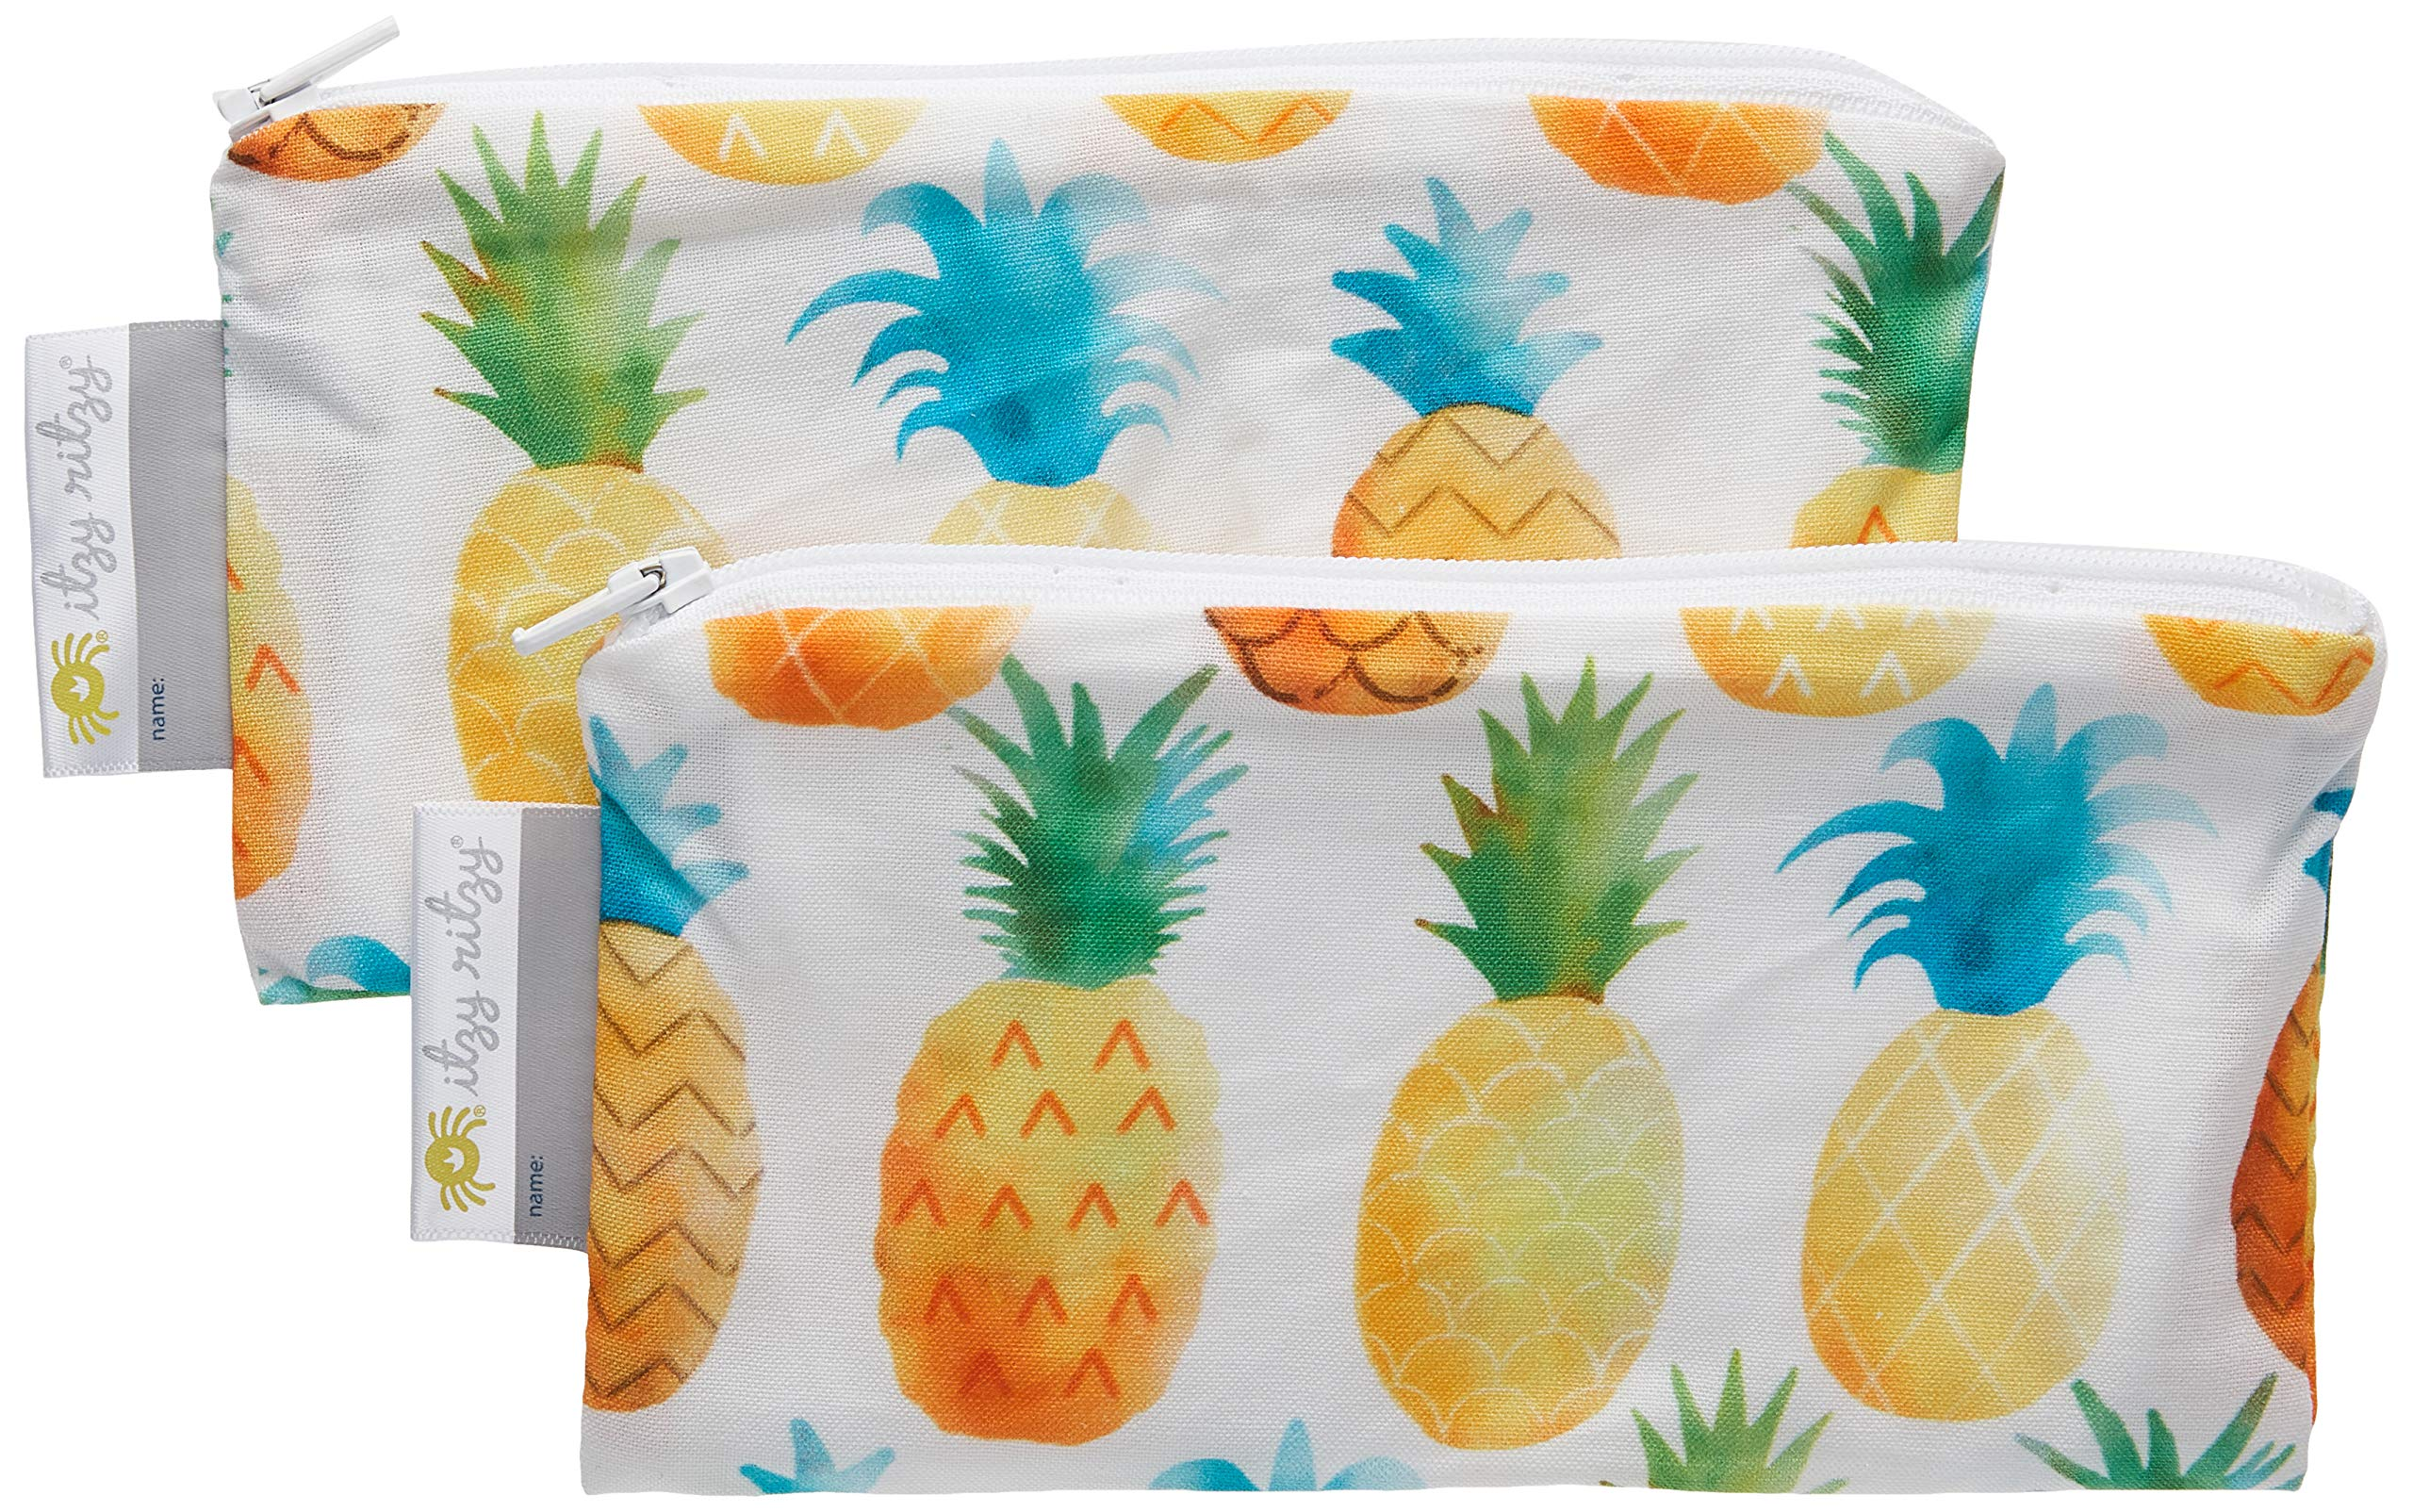 """Itzy Ritzy Reusable Mini Snack Bags – 2-Pack of 3.5"""" x 7"""" BPA-Free Snack Bags are Food Safe & Washable for Storing Snacks, Pacifiers and Makeup in a Diaper Bag, Purse or Travel Bag, Pineapple"""